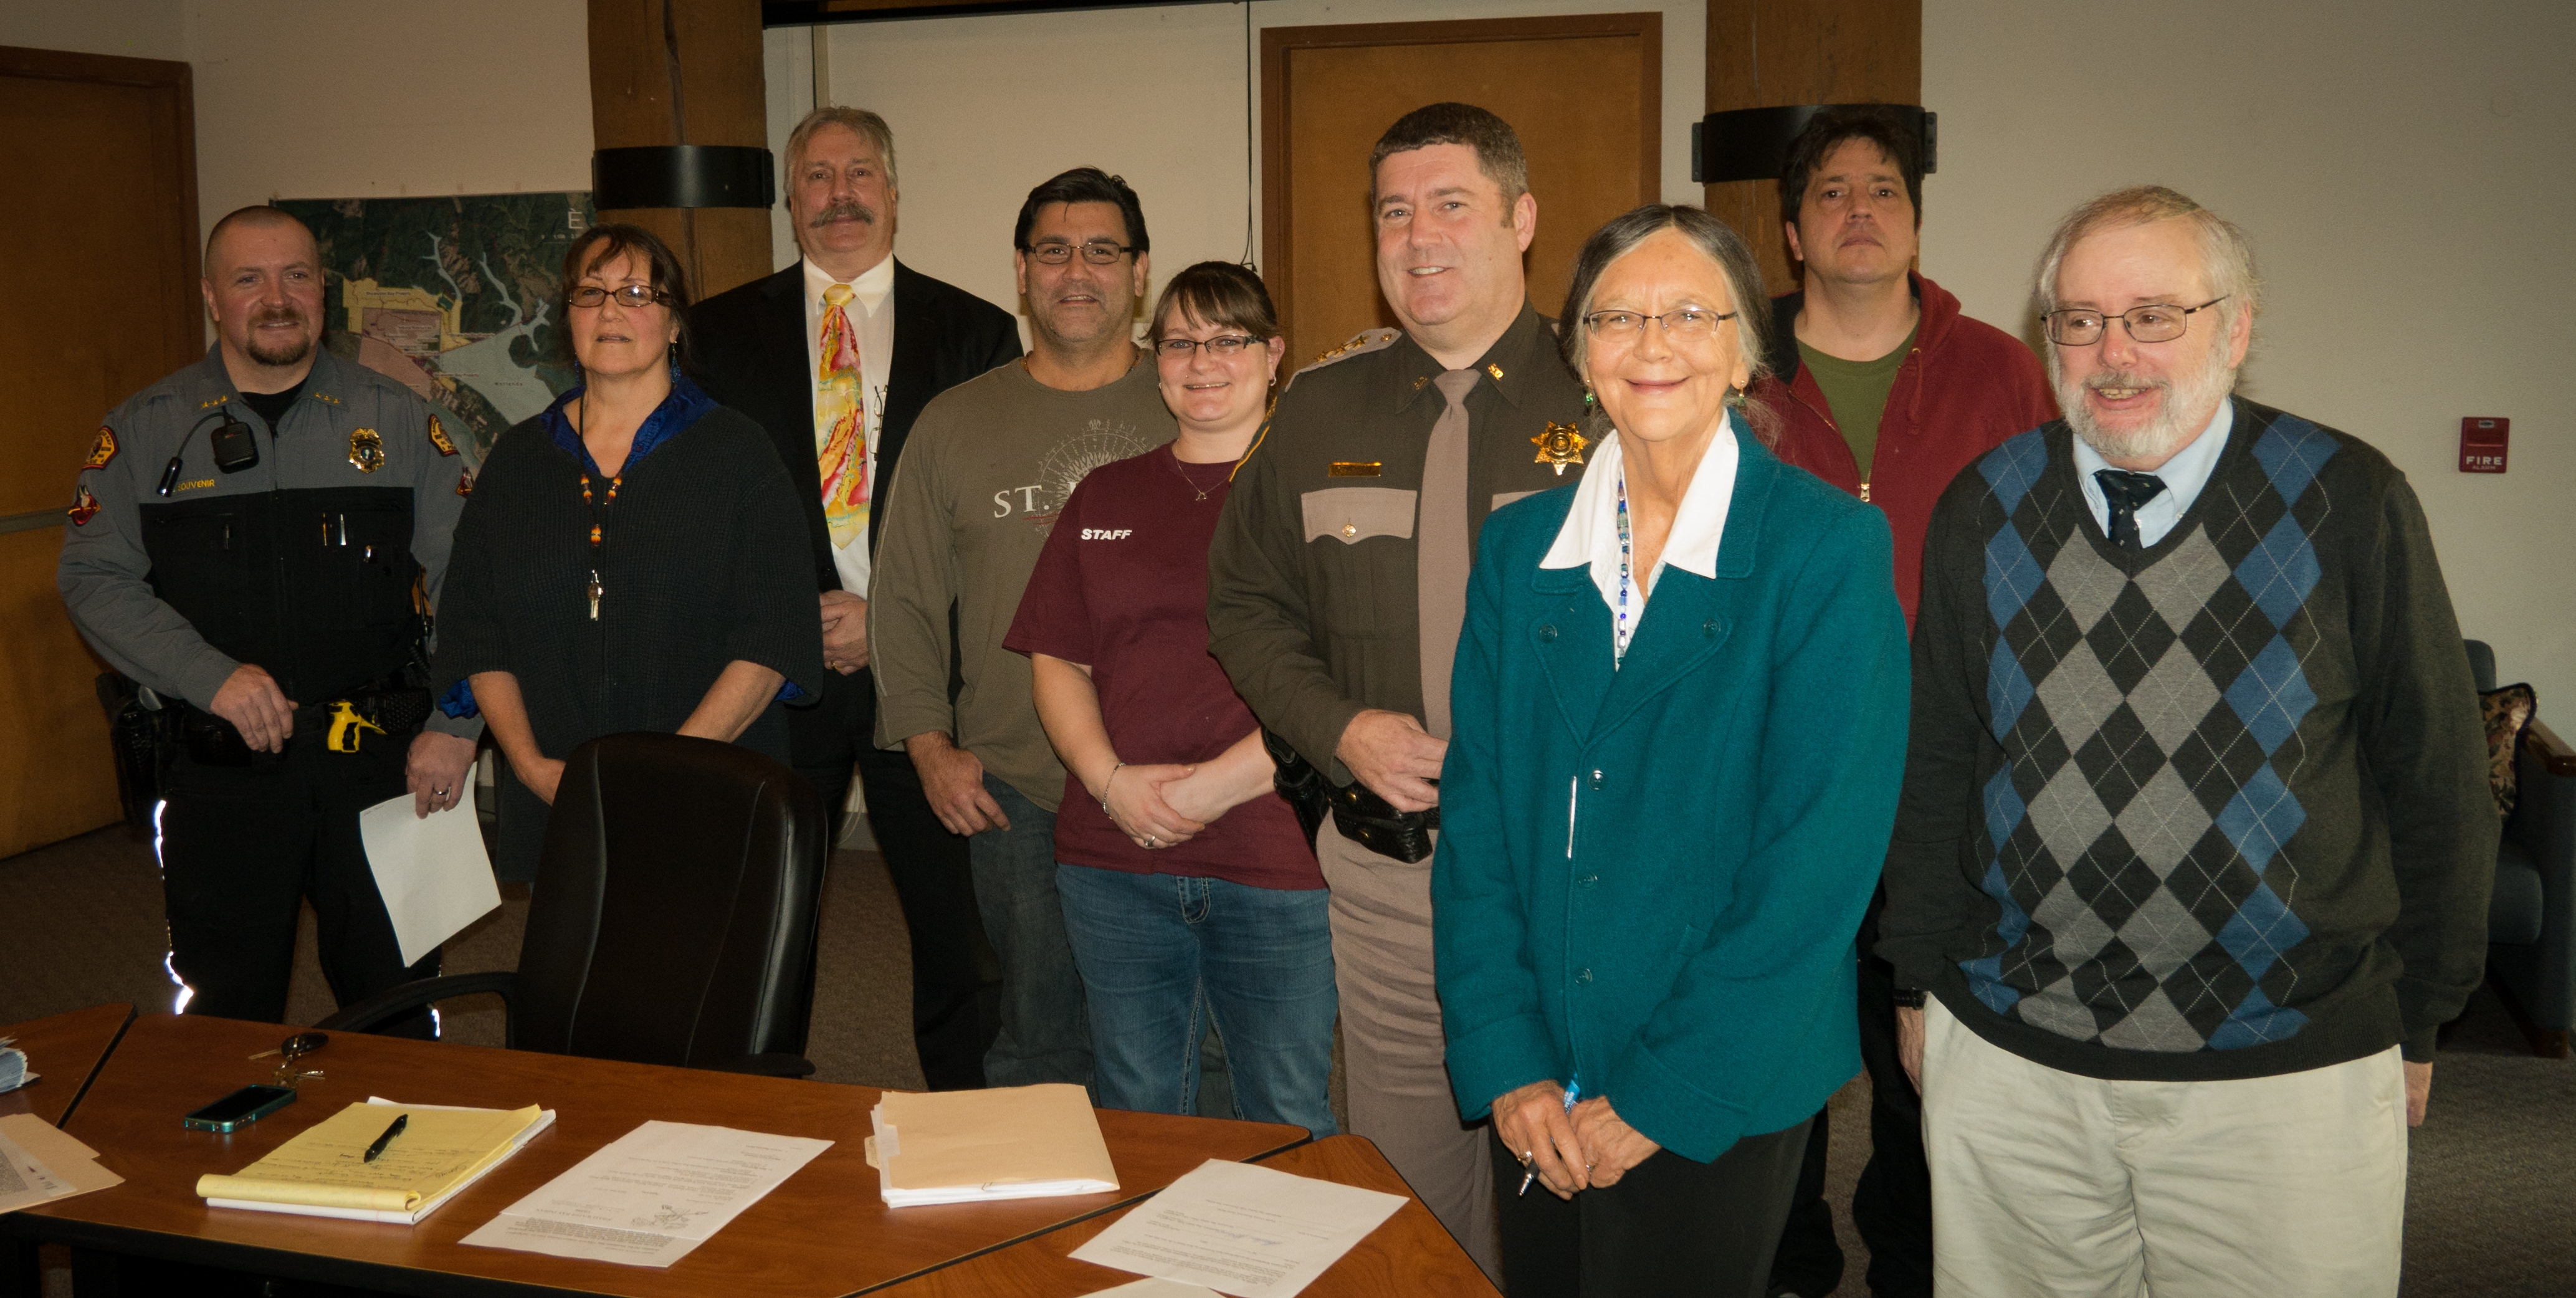 Pictured from left to right: Shoalwater Bay Police Chief Robin Souvenir, Secretary Lynn Clark, Tribal Prosecutor Tim Rybka, Tribal Vice Chairman Monty Baker, Tribal member at large Jennifer Taylor, Pacific County Sheriff Scott Johnson, Tribal Chairperson Charlene Nelson, Tribal Treasurer Tom Anderson and Pacific County Prosecutor David Burke.